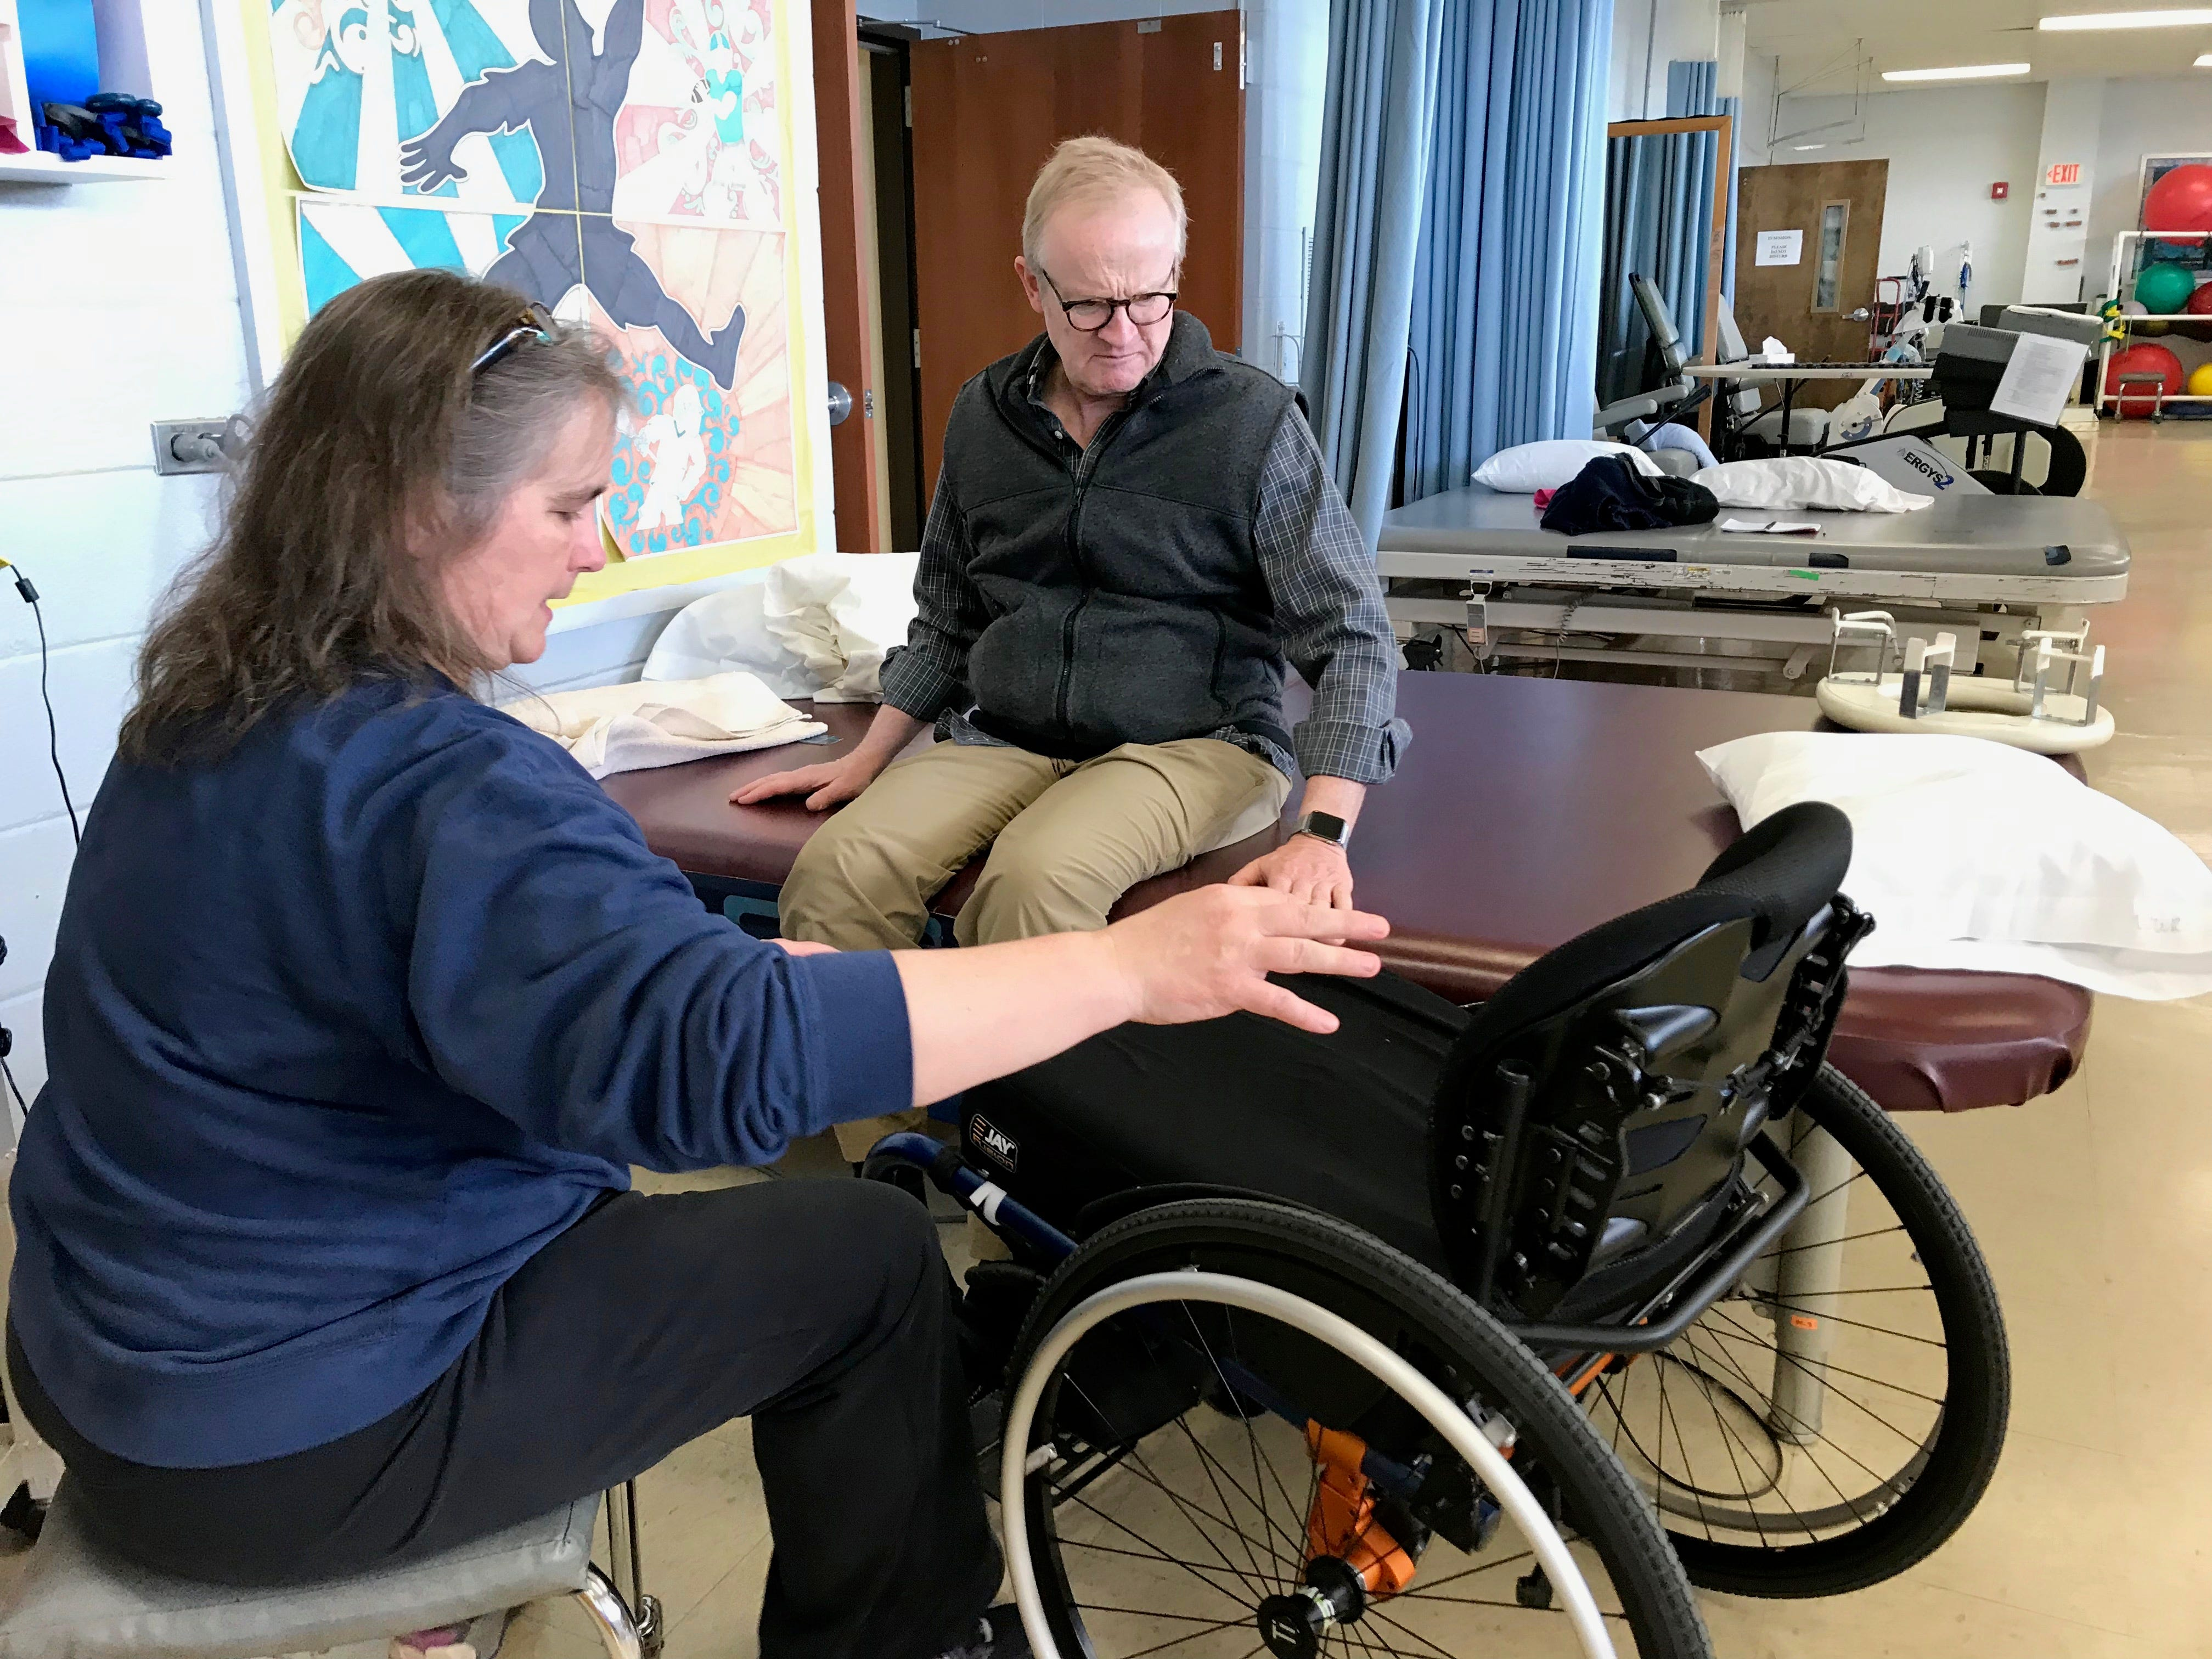 Dr. Robert Kyler receives physical and occupational therapies at Wilson Workforce and Rehabilitation Center in Fishersville. Photographed with Greta Nelson, physical therapist and assistive technology senior, on Wednesday, March 20, 2019.